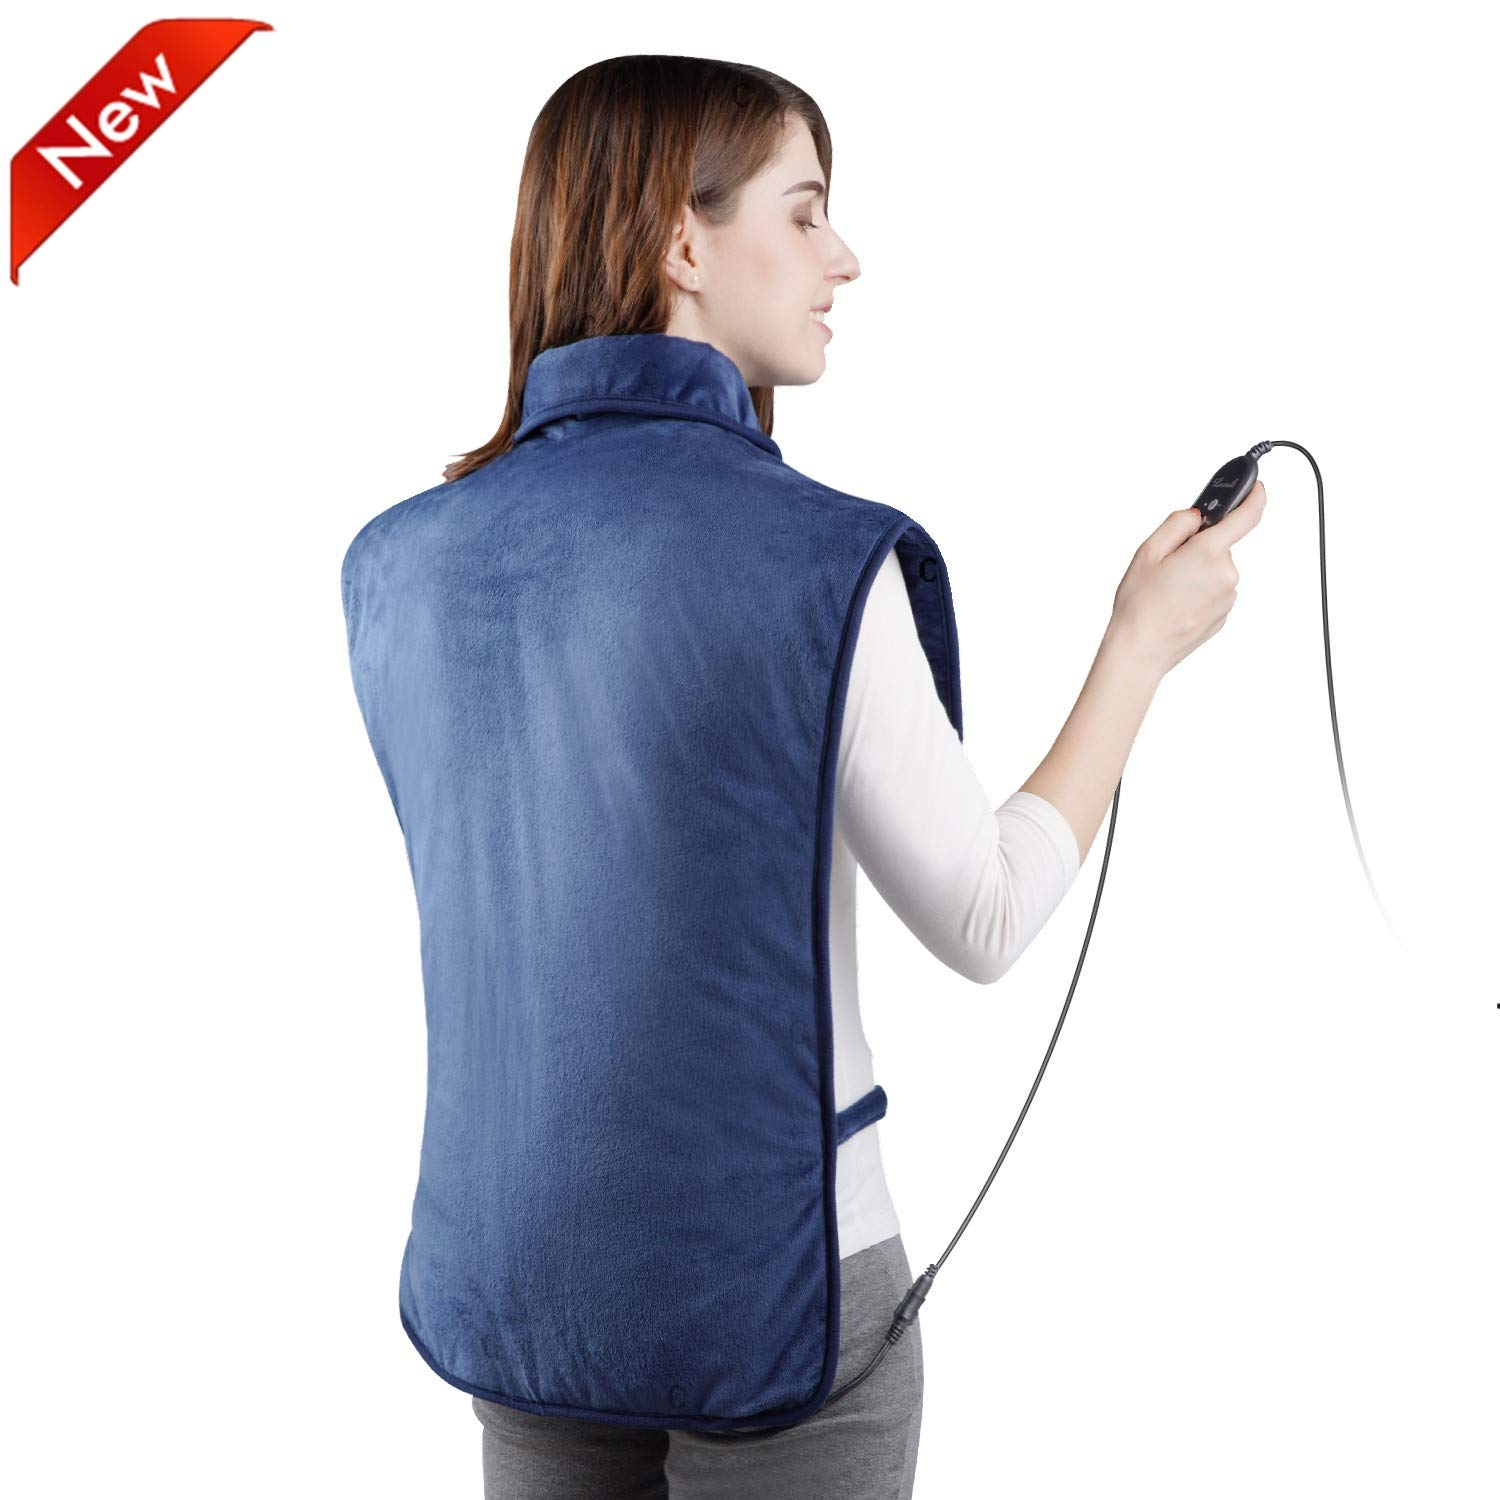 Levesolls Heating Pads for Back Pain,Extra Large Electric Heating Pad for Neck Shoulder Relief,6 Heat Settings Auto Shut Off,(2020 Updated Heating Technology) 100V-240V to 24V,25 Inch x 39 Inch,Blue